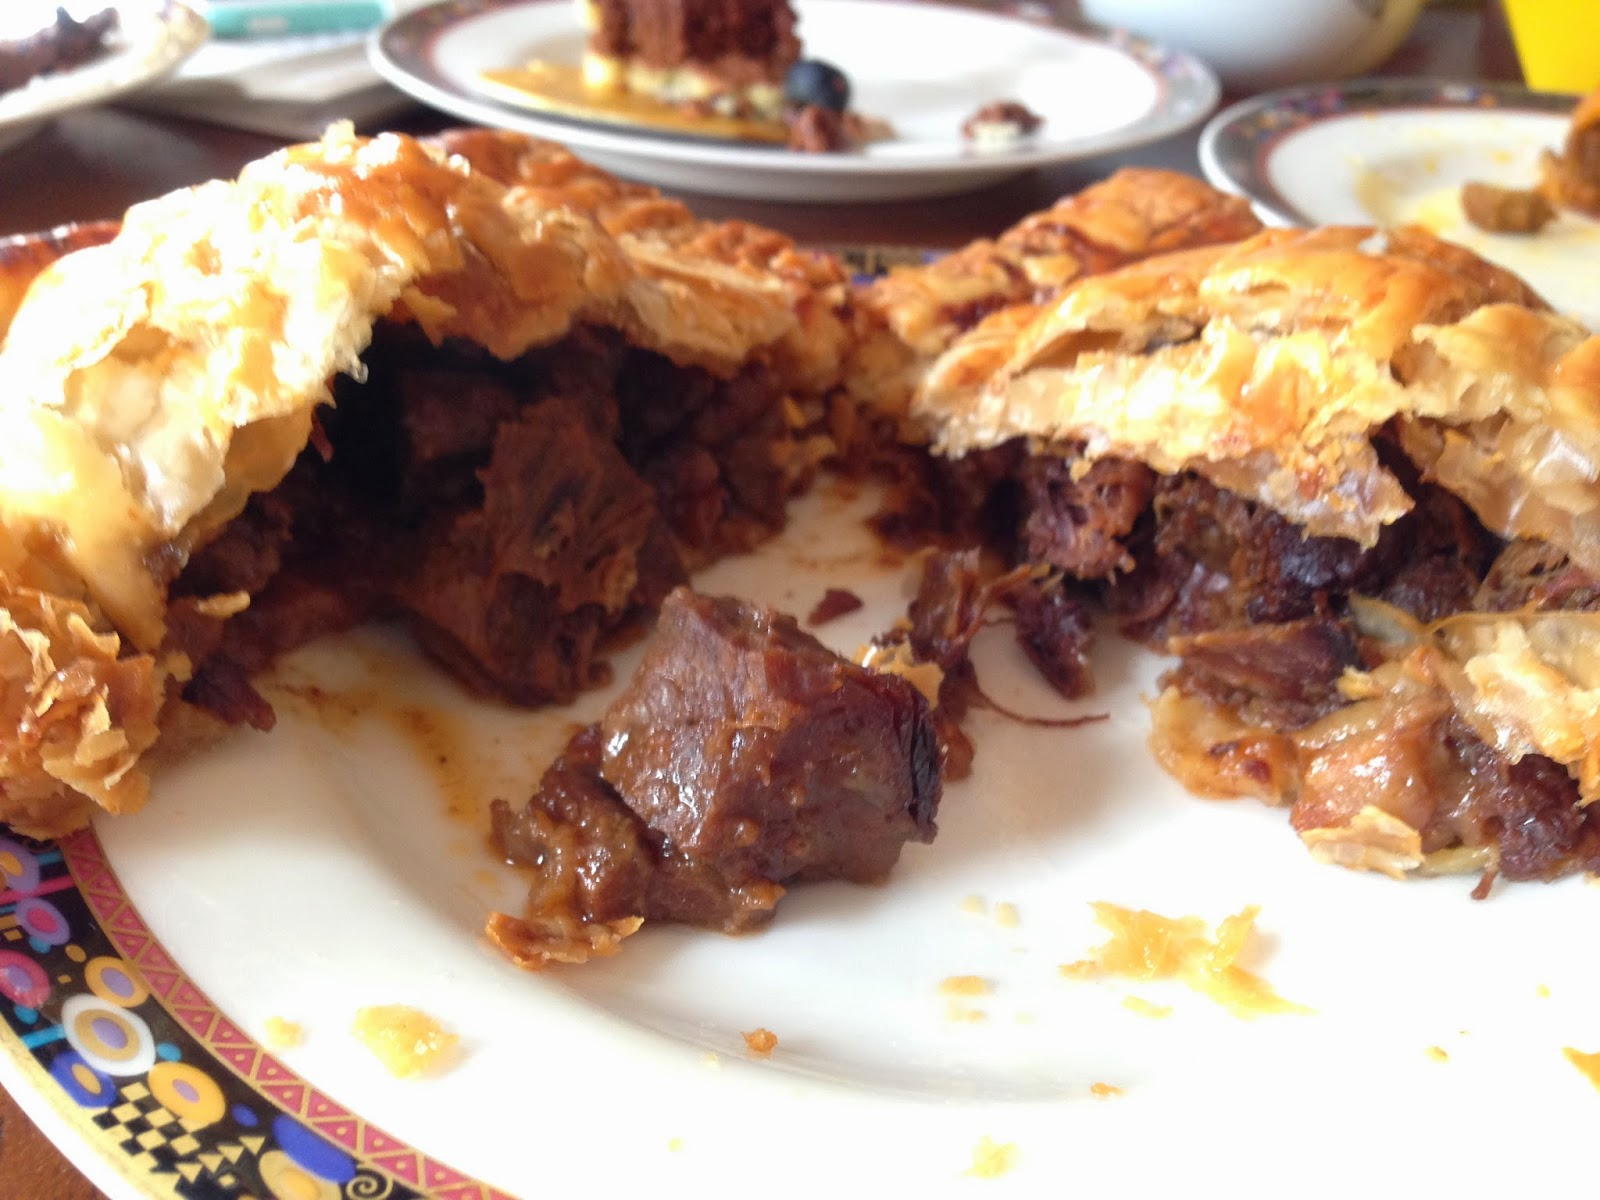 Beef with Onion Pie fillings